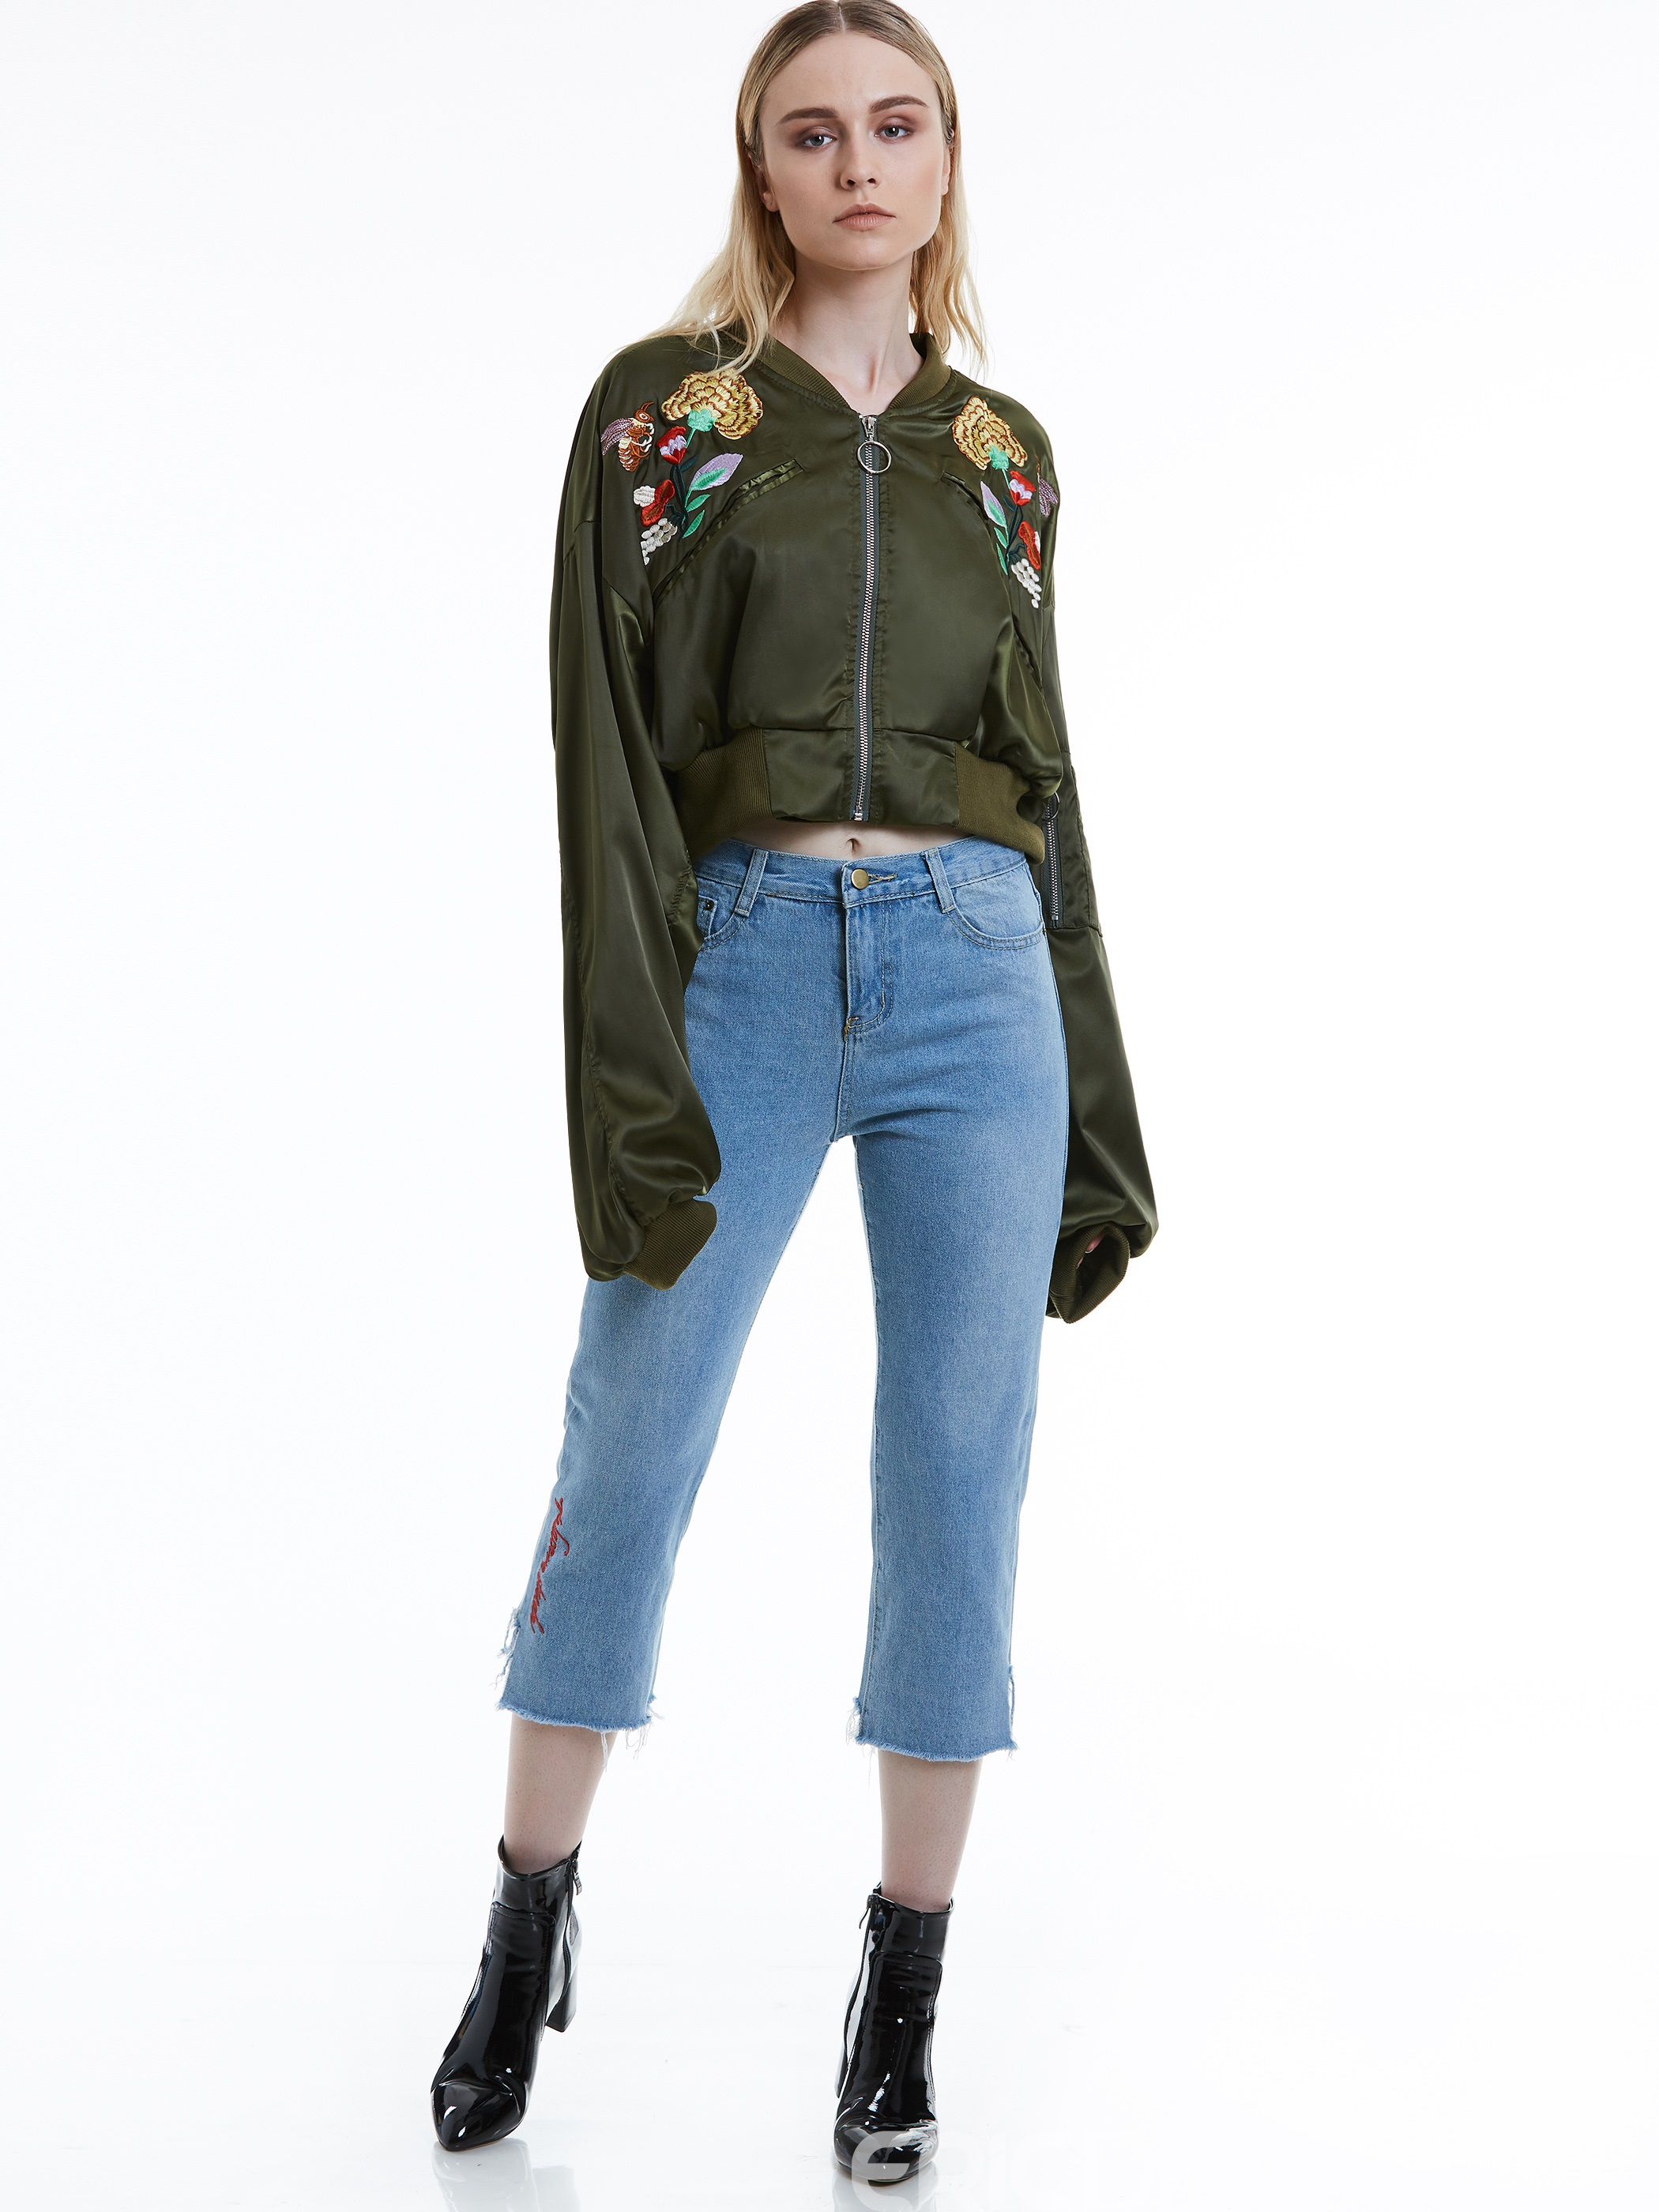 Ericdress Batwing Sleeve Floral Embroidery Jacket